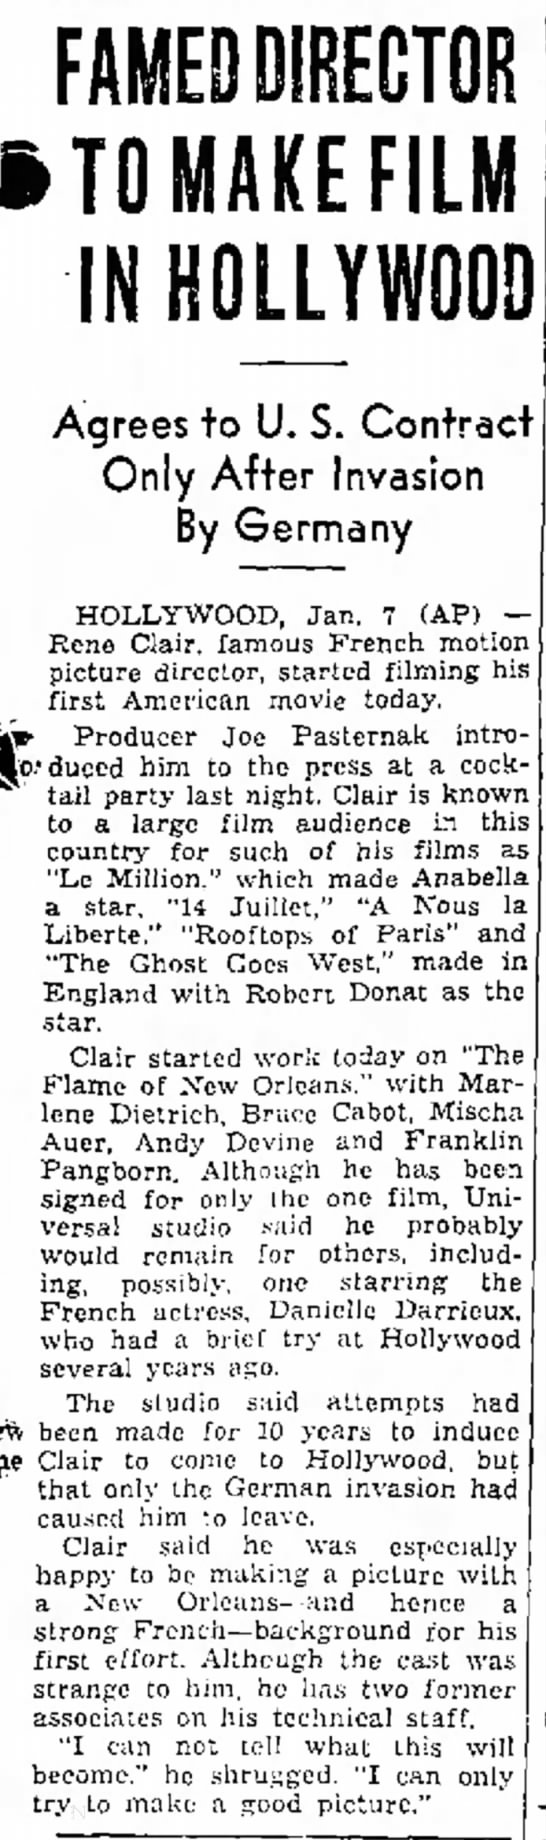 RENE CLAIR-1 - FAMED DIRECTOR iTOMAKEFILM IN HOLLYWOOD Agrees...